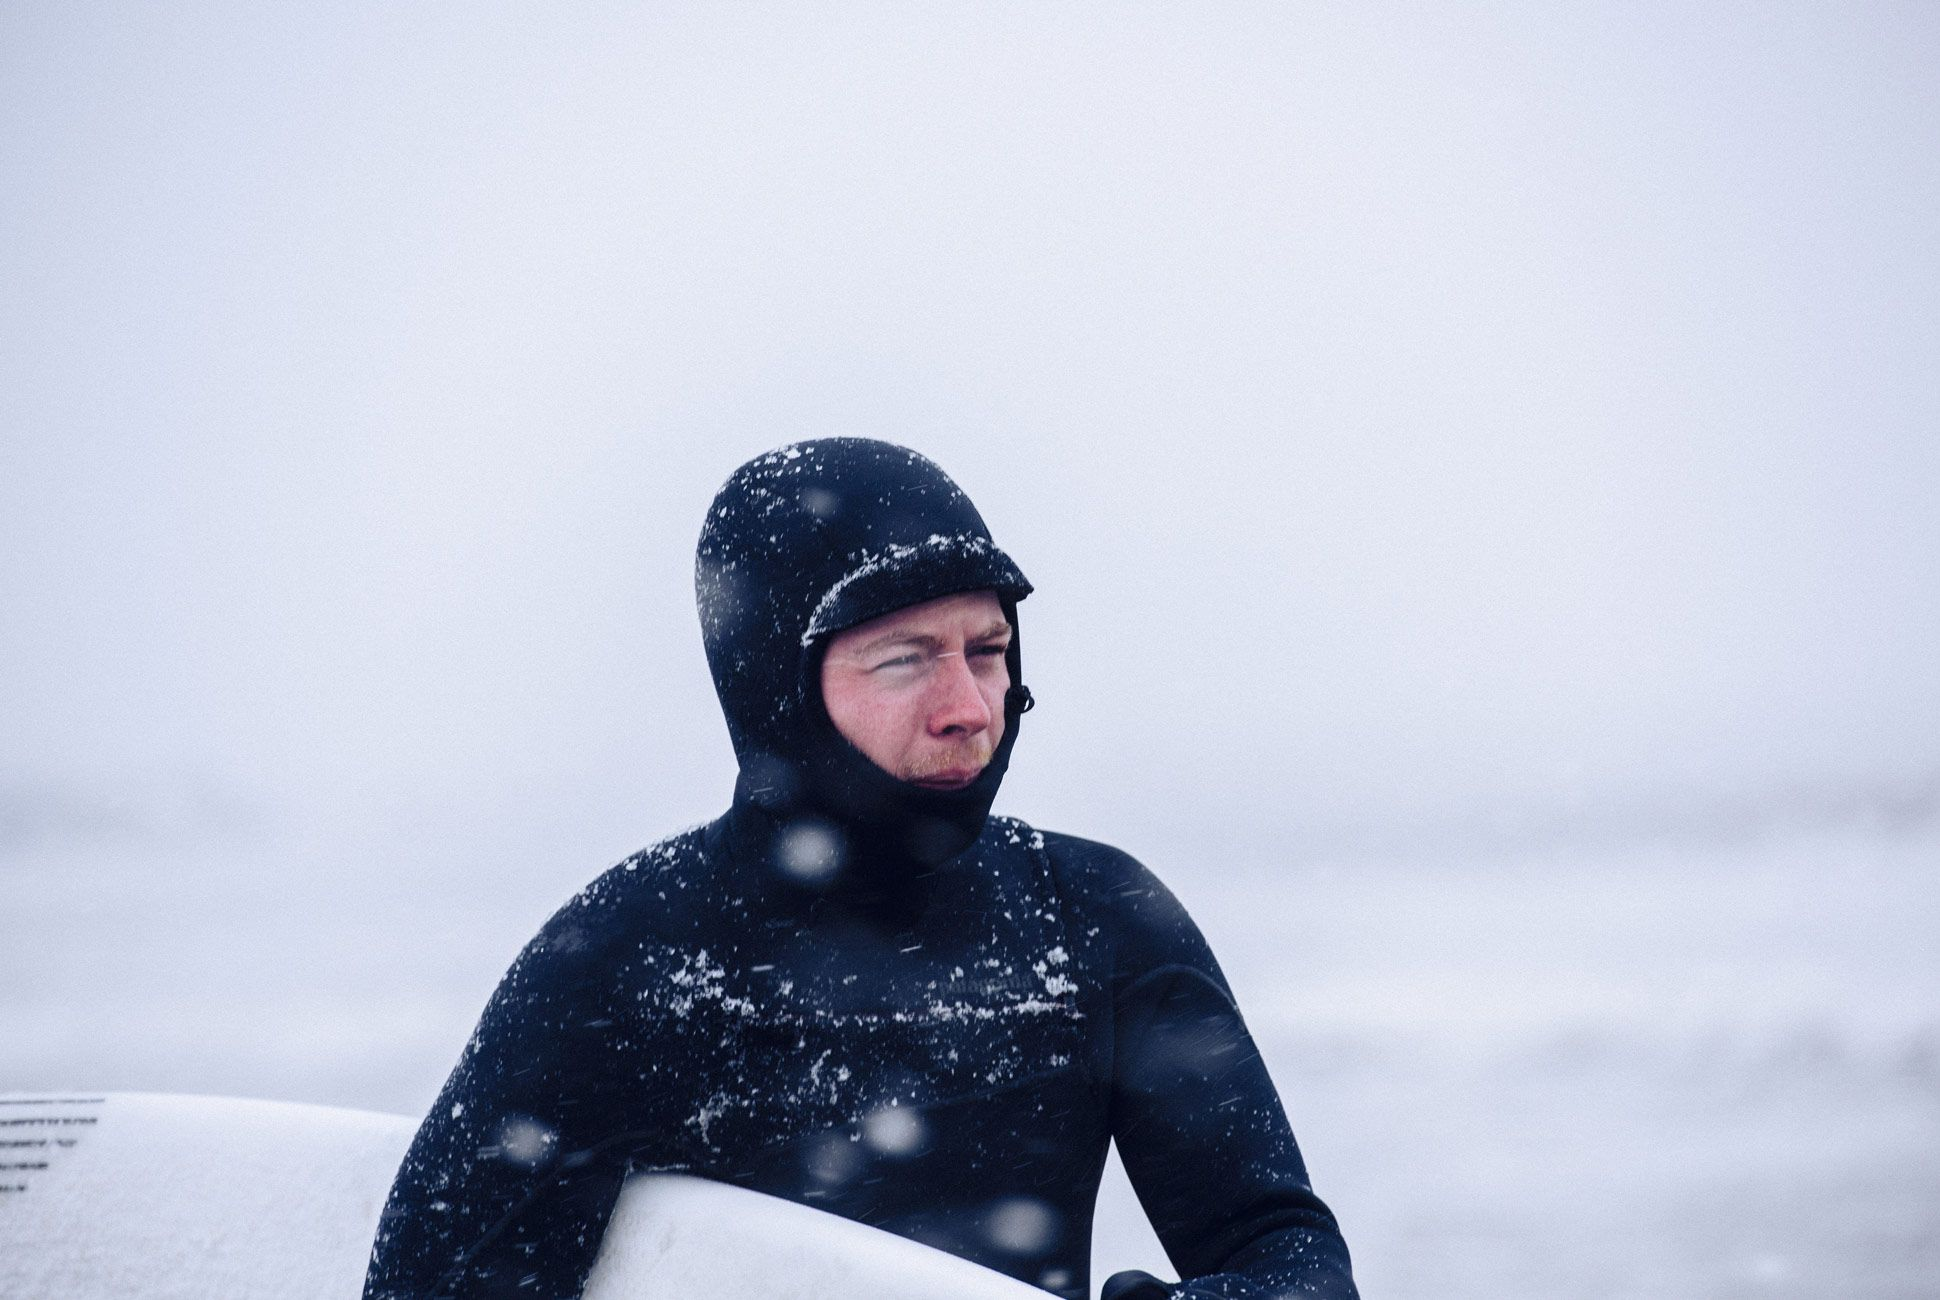 Winter-Surfing-Suit-AJ-Gear-Patrol-Slide-3